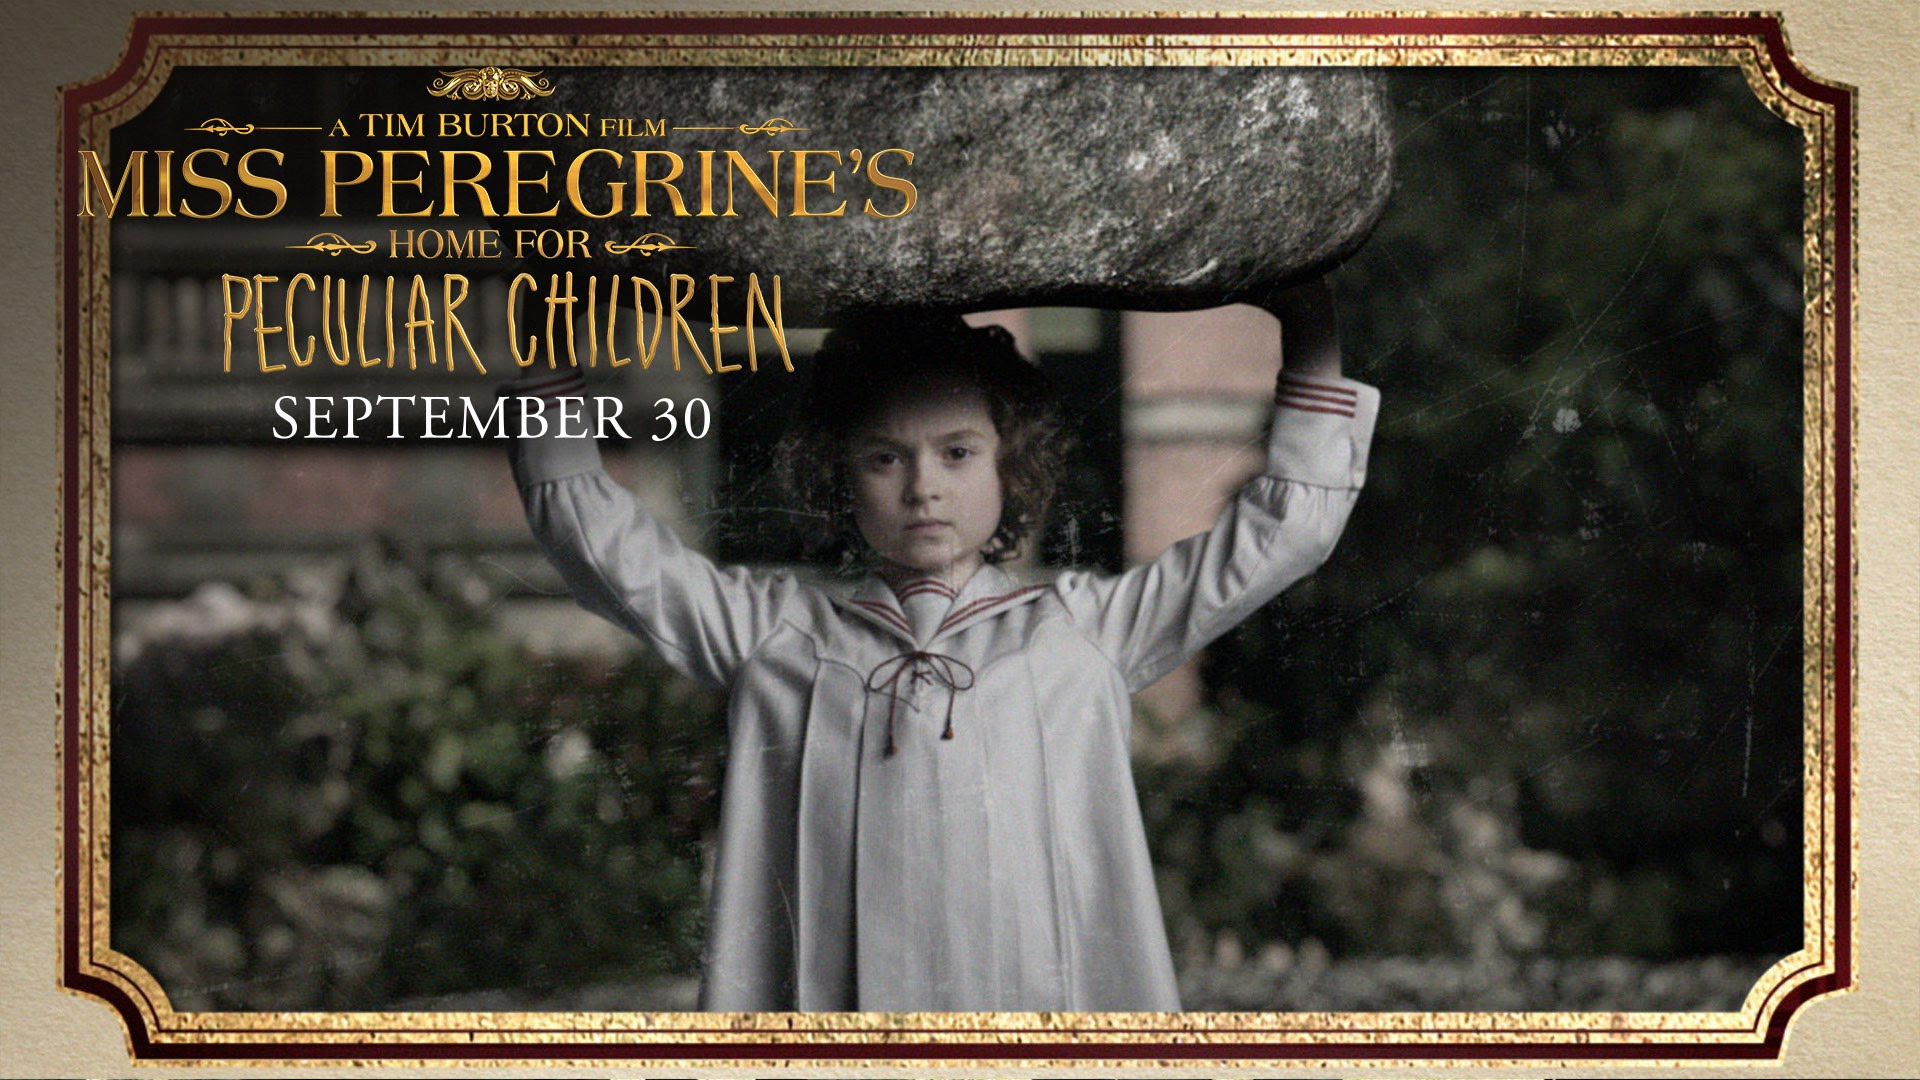 Miss Peregrine's Home For Peculiar Children | Meet the Peculiars: Bronwyn | 20th Century FOX